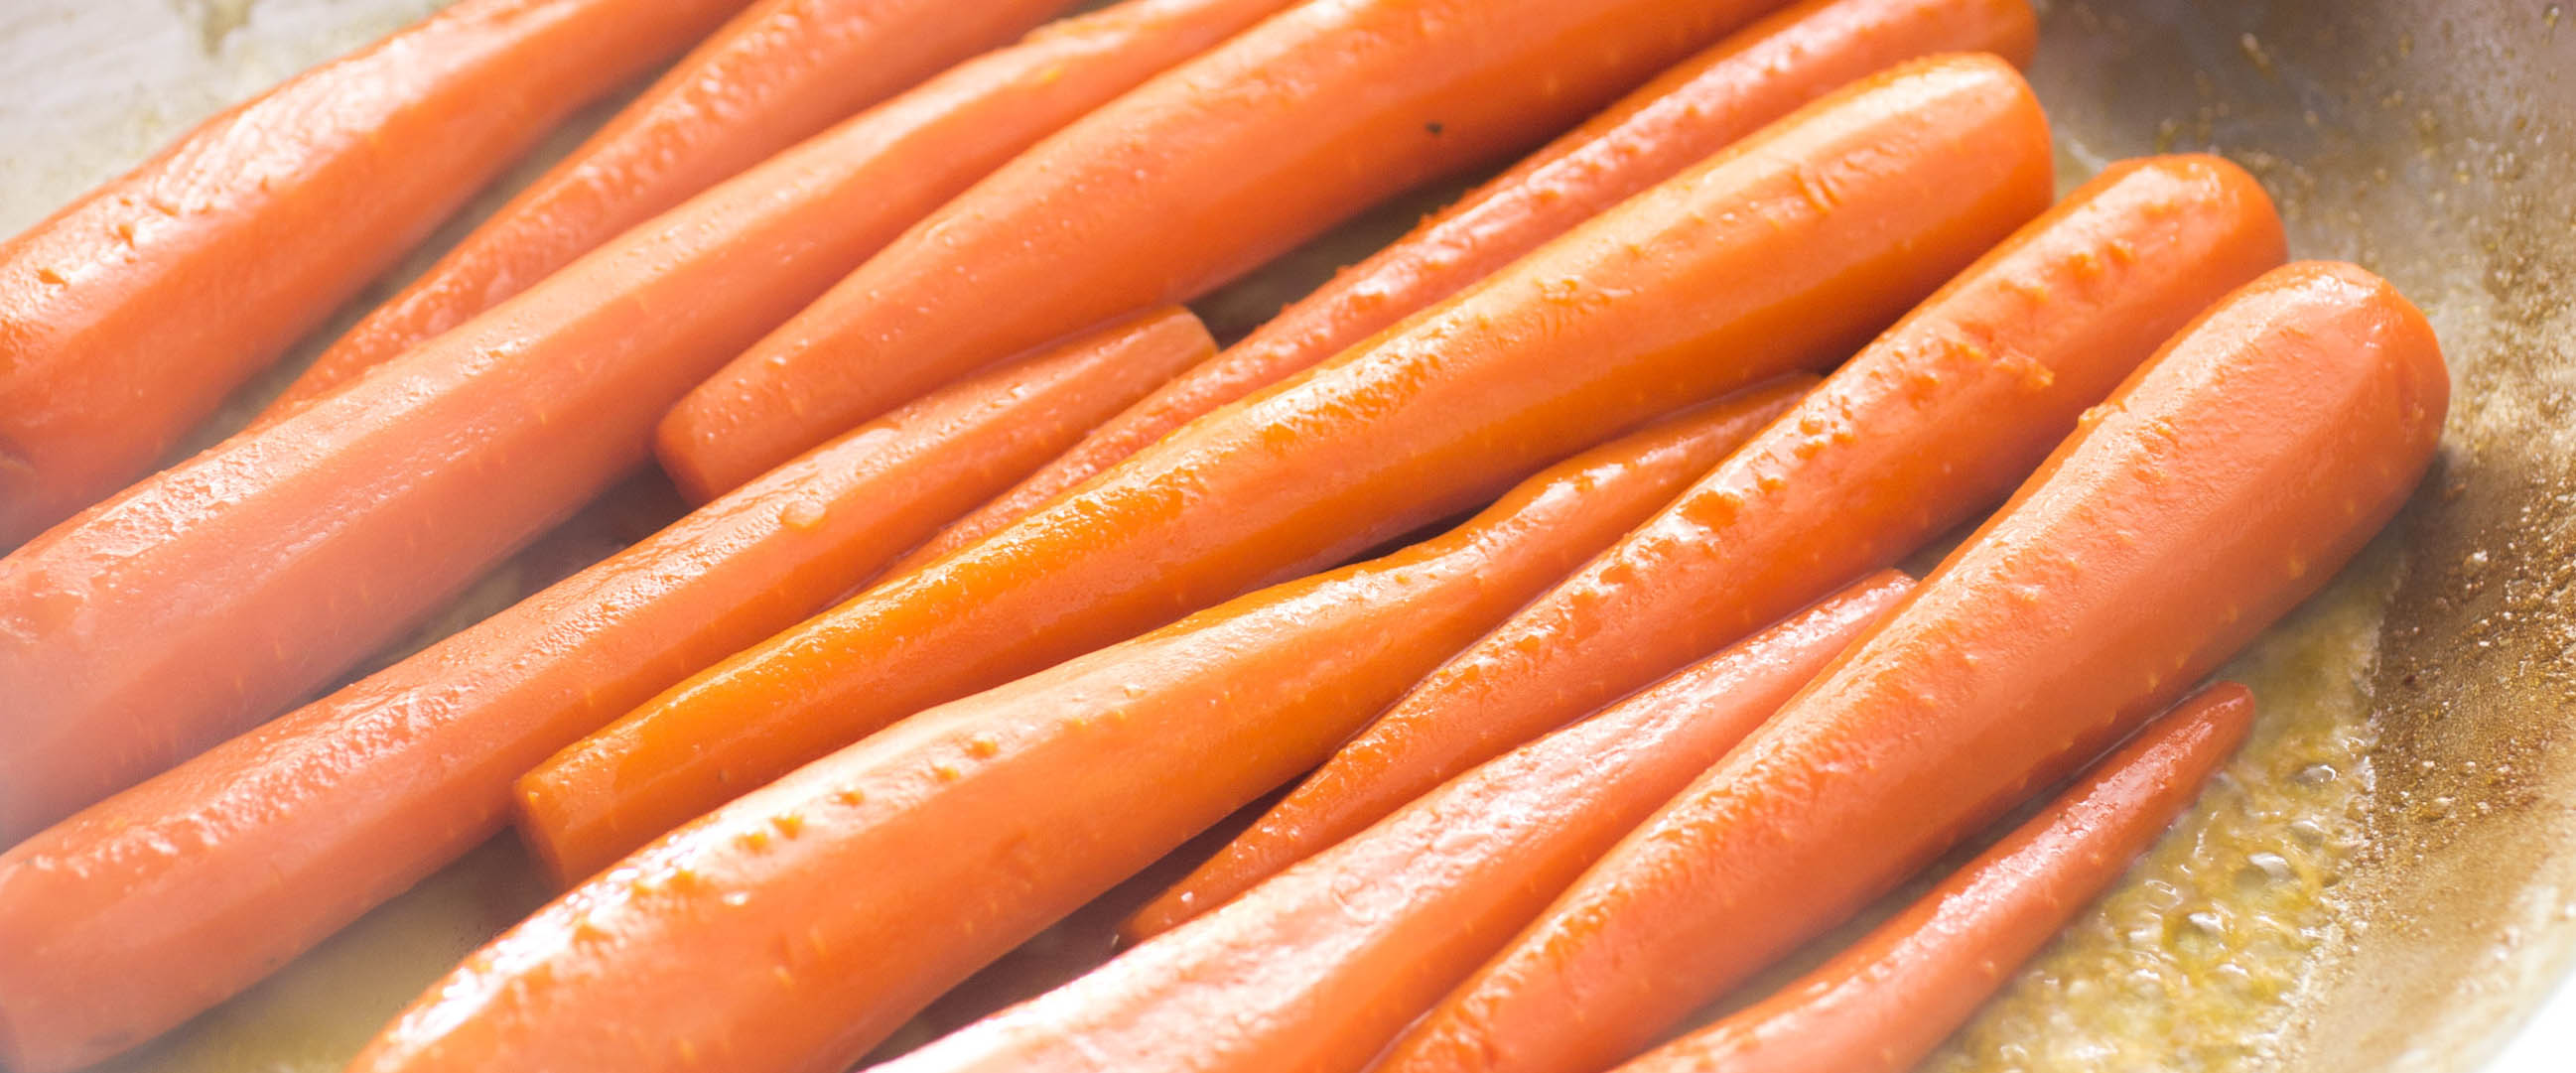 Slow-Cooked Whole Carrots